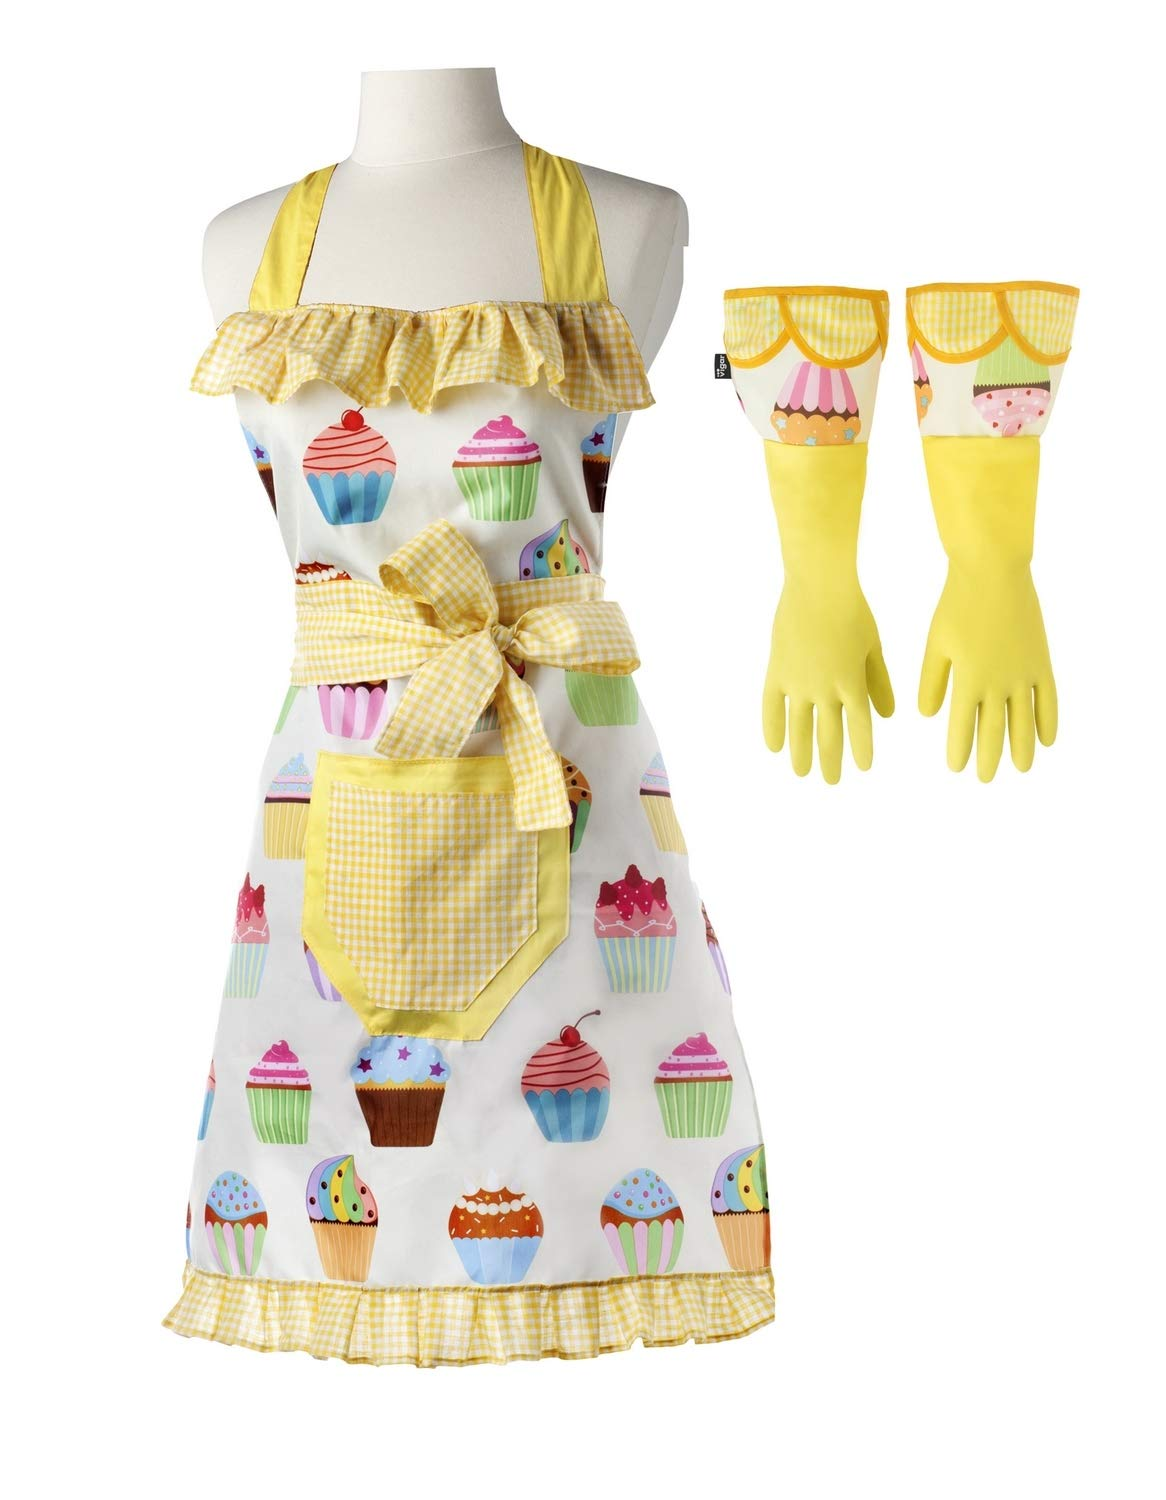 Vigar Lulu Housewife Apron and Dish Glove Set, Waterproof Machine Washable Cupcake Patterned Apron and Latex Gloves with Extra-Long Cuff